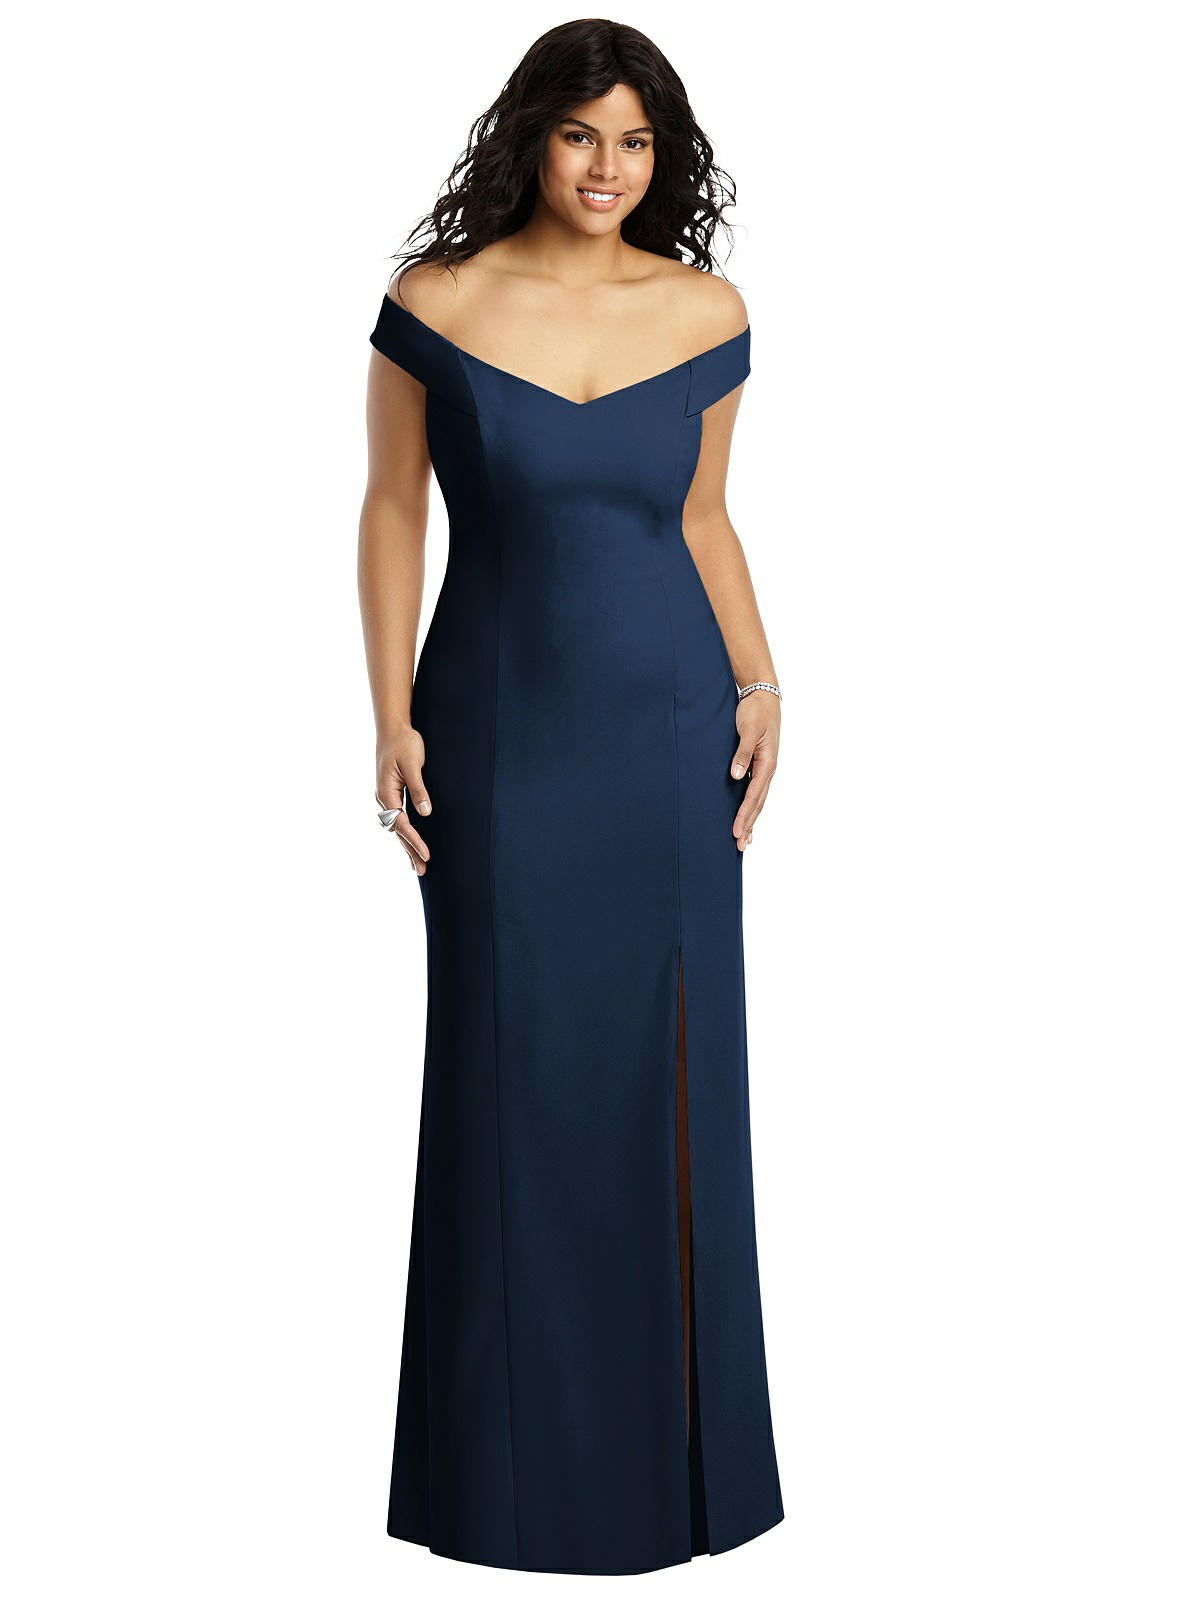 Floor length, fit and flare, off-shoulder bridesmaid gown. Featuring a front split and criss-cross back. Shown in Colour Midnight.